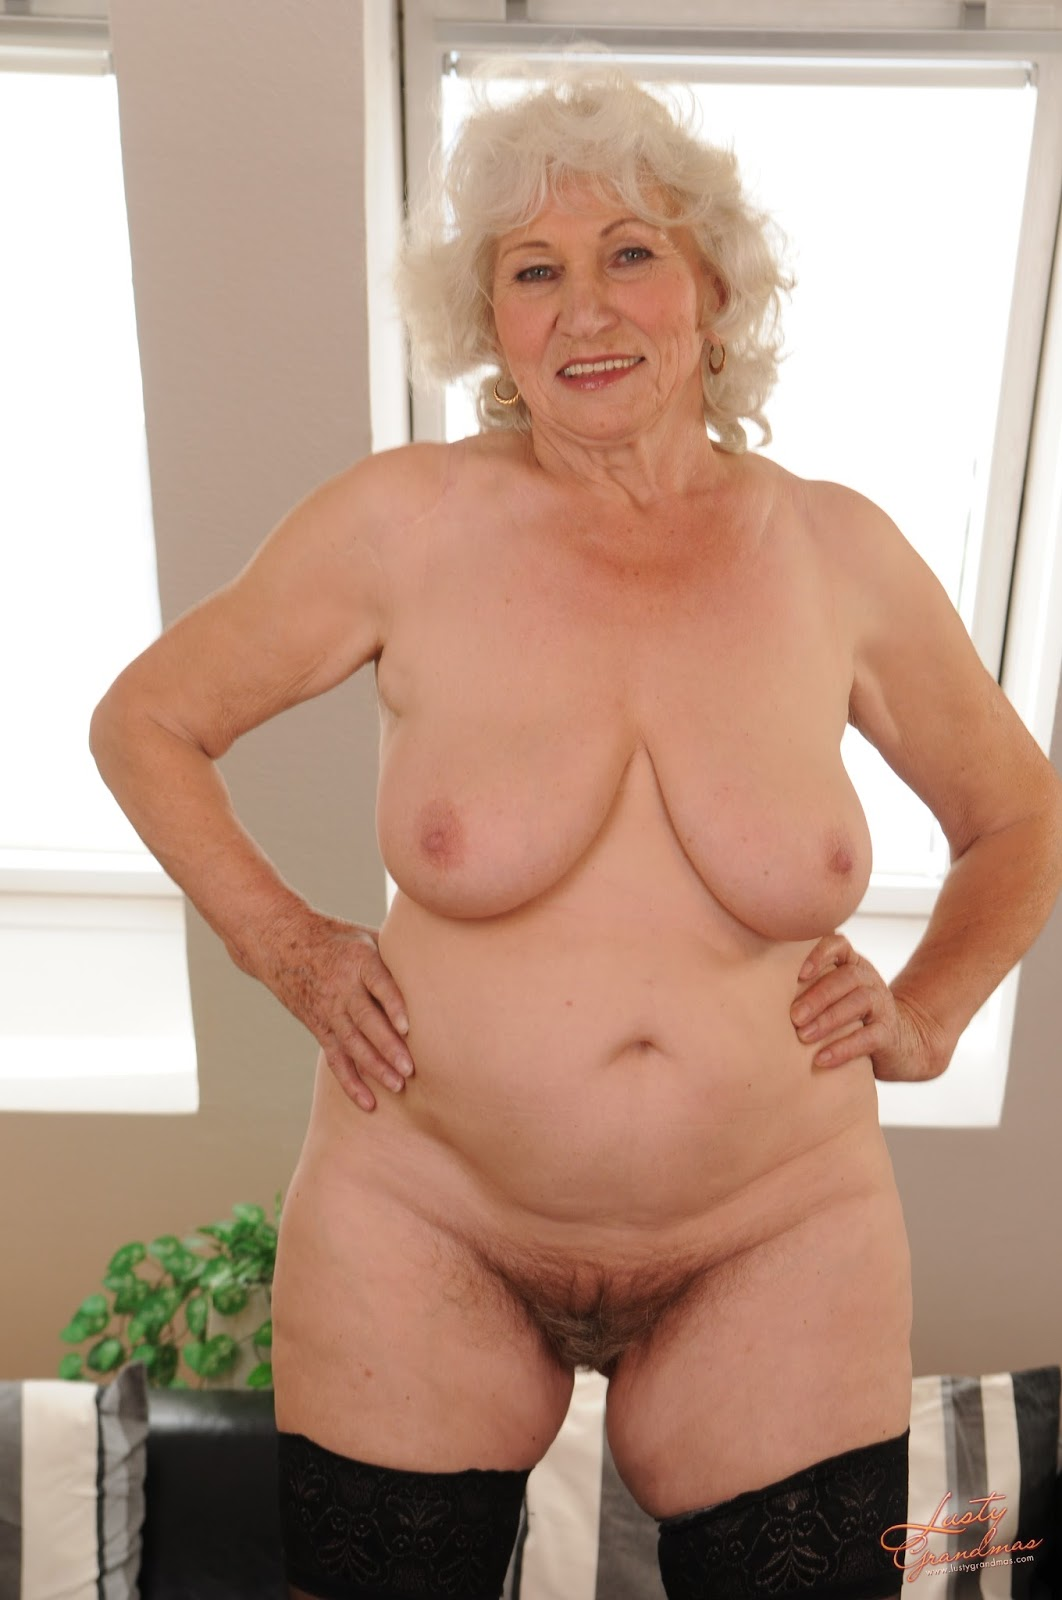 Images of mature porn stars getting fucked